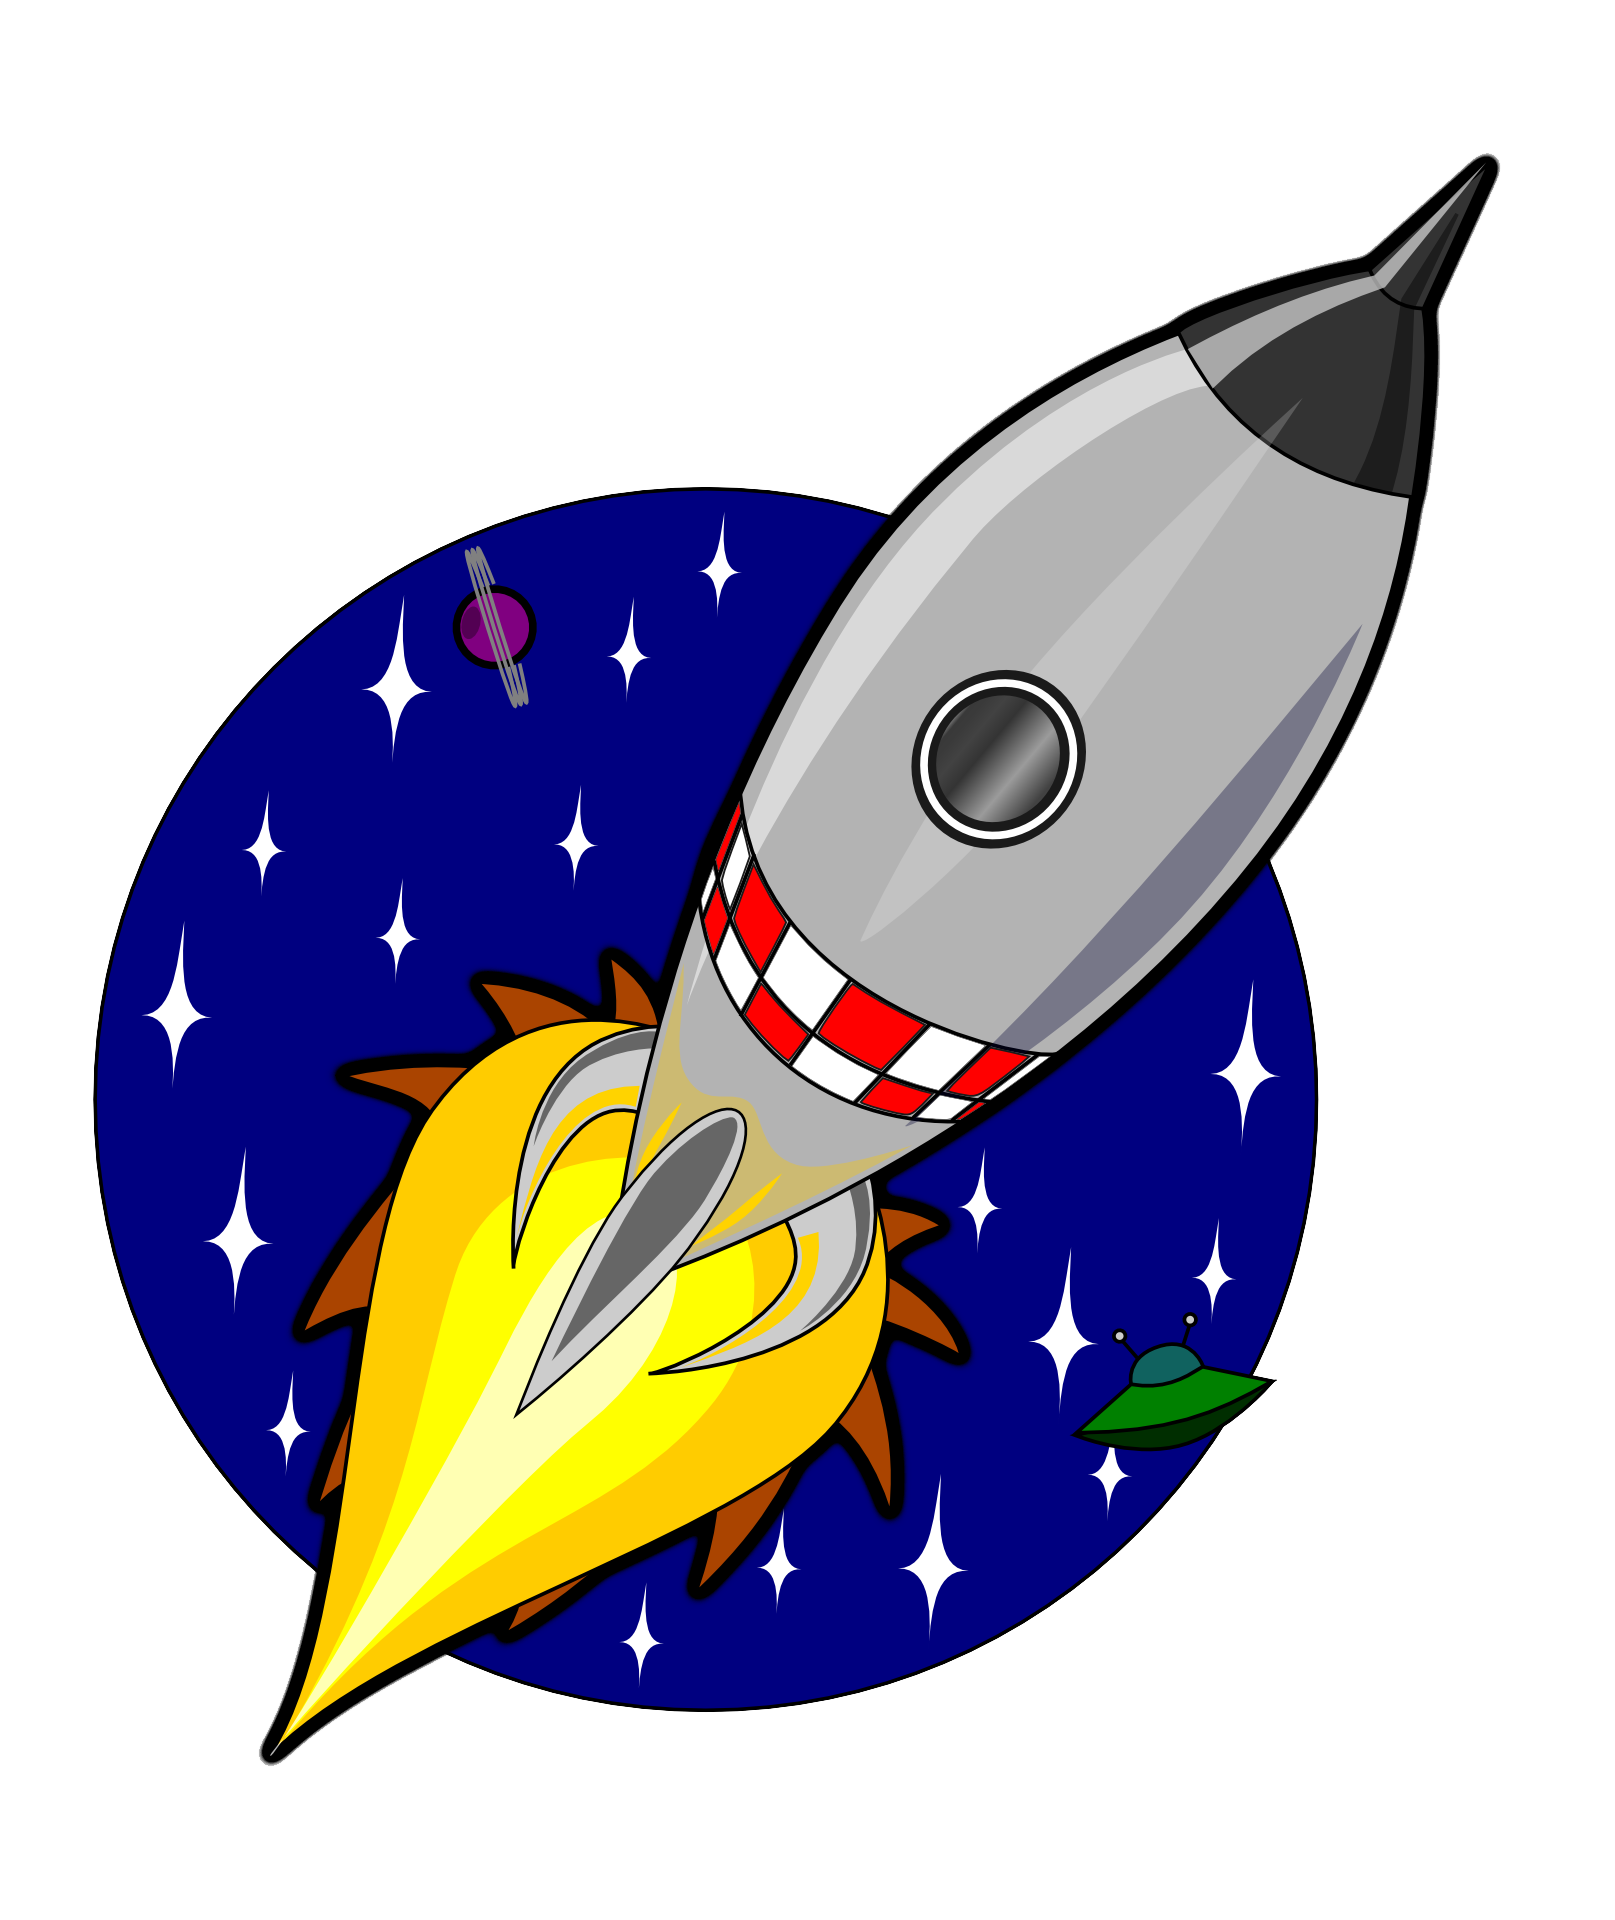 Clipart rocket rocket scientist. Outer space free content